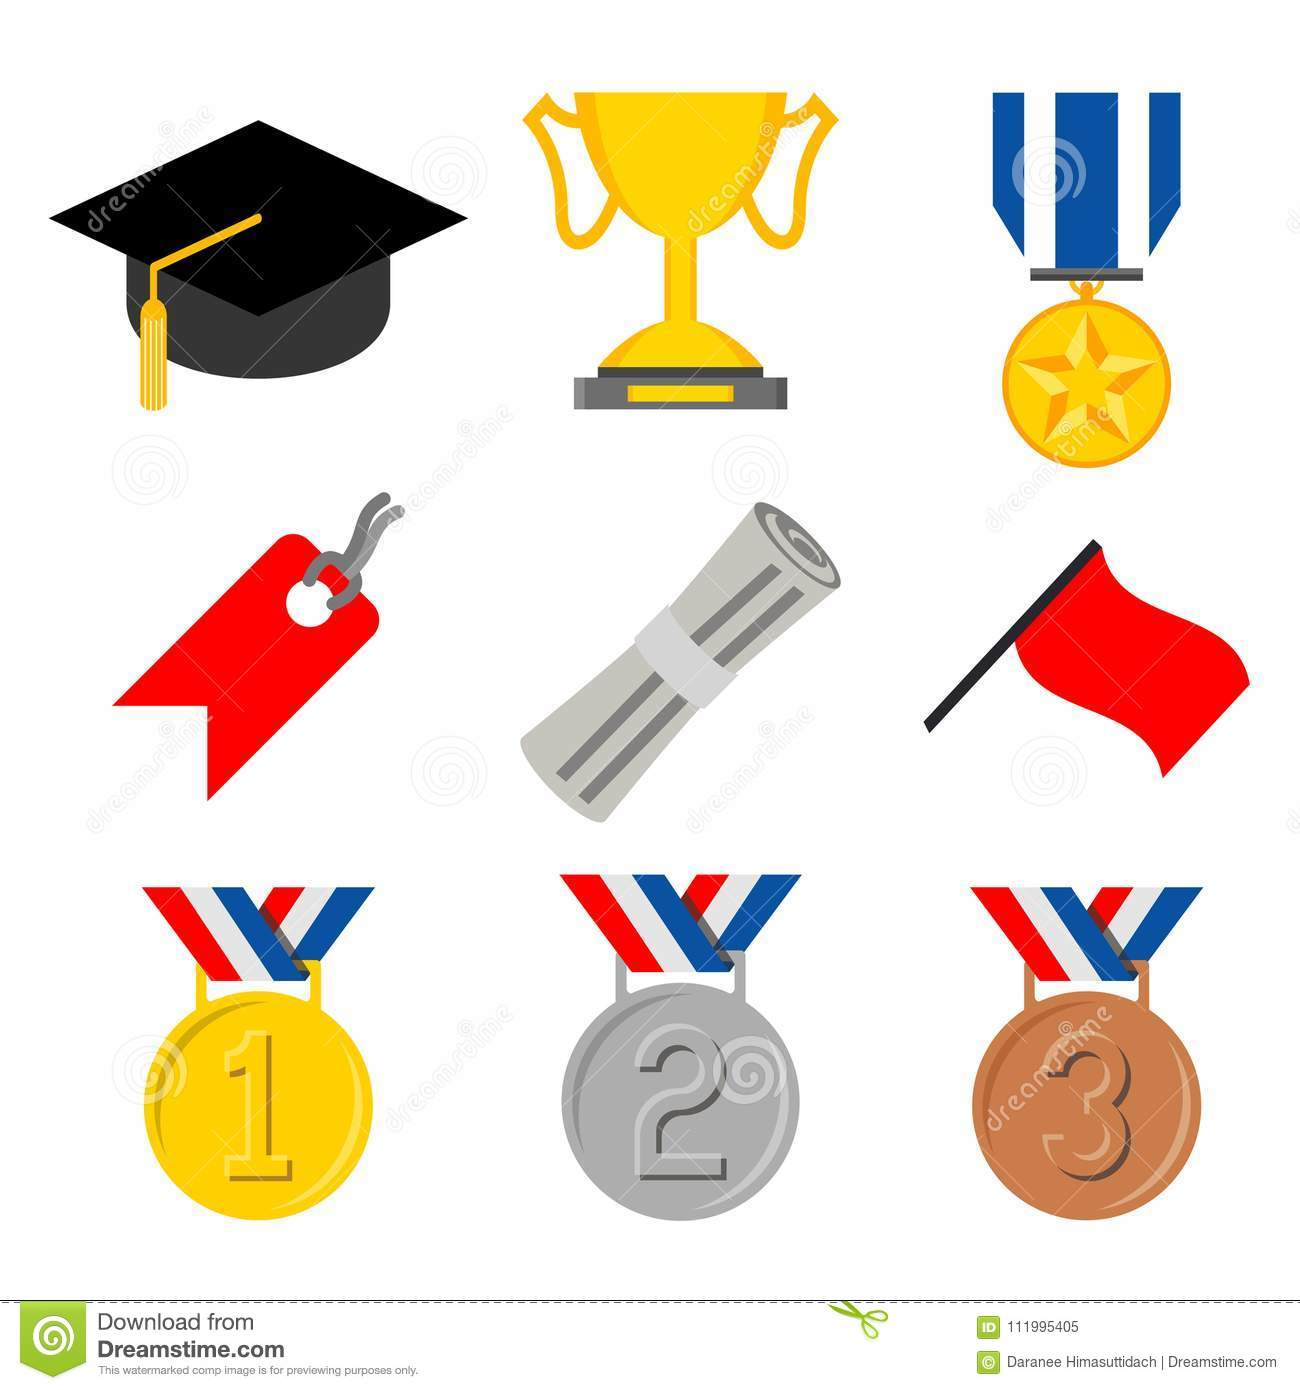 Education Graduate Bachelor Certificate Degree Symbol Icon Vector